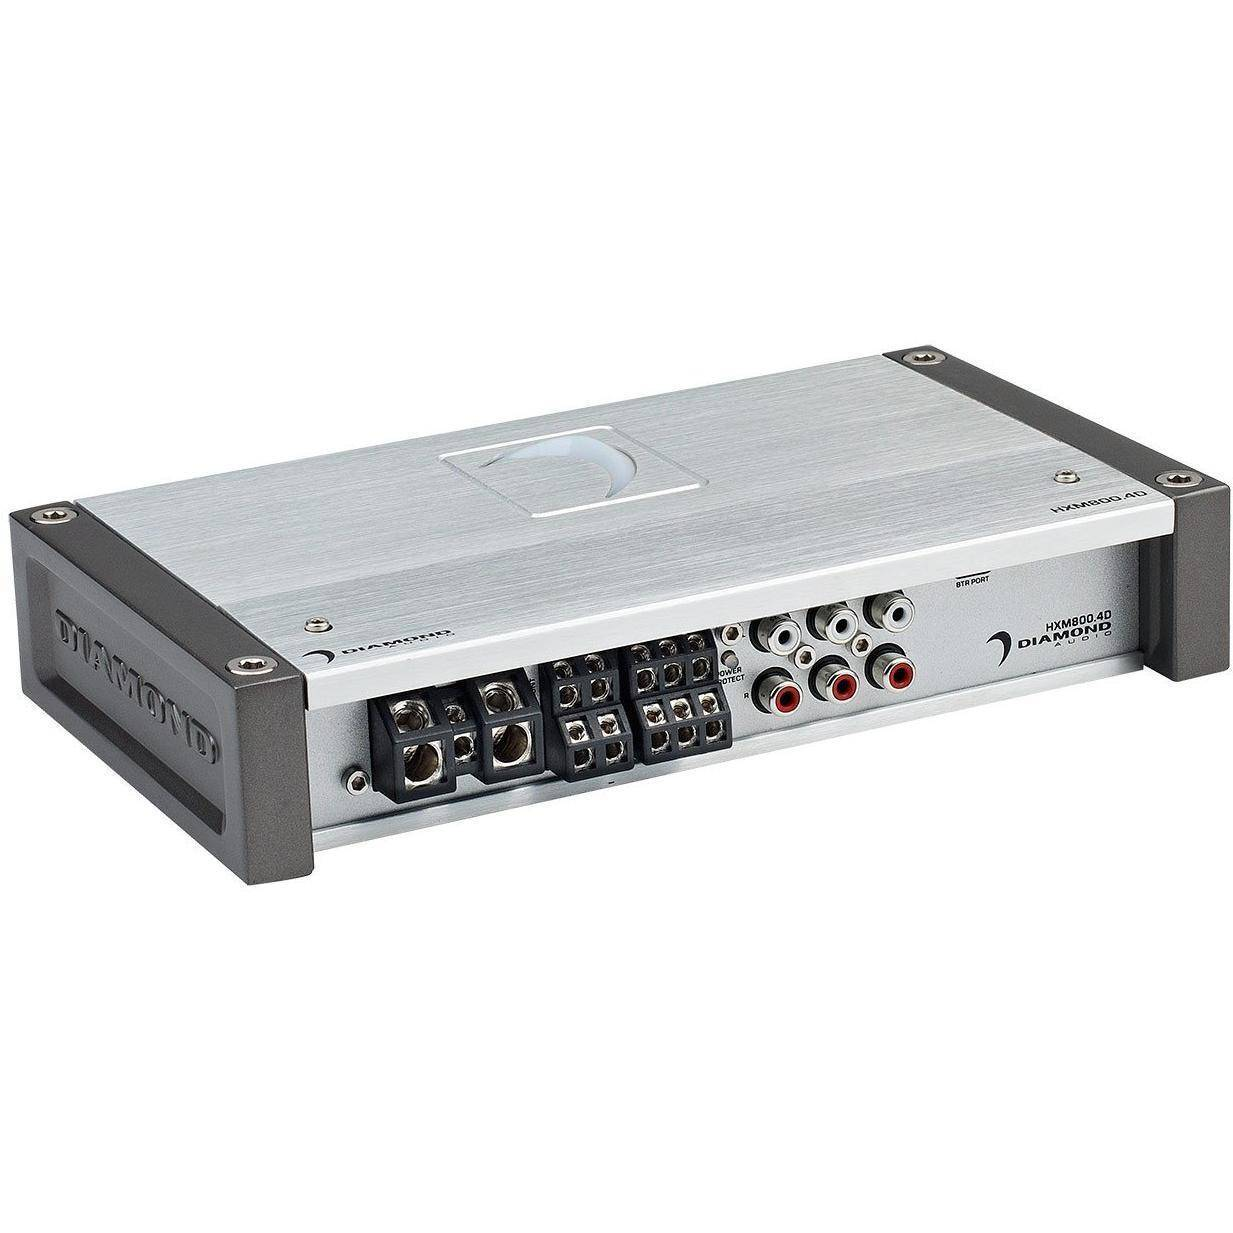 Diamond Audio HXM800 4D 800W RMS 4-Channel Amplifier for Harley Bagger  Systems